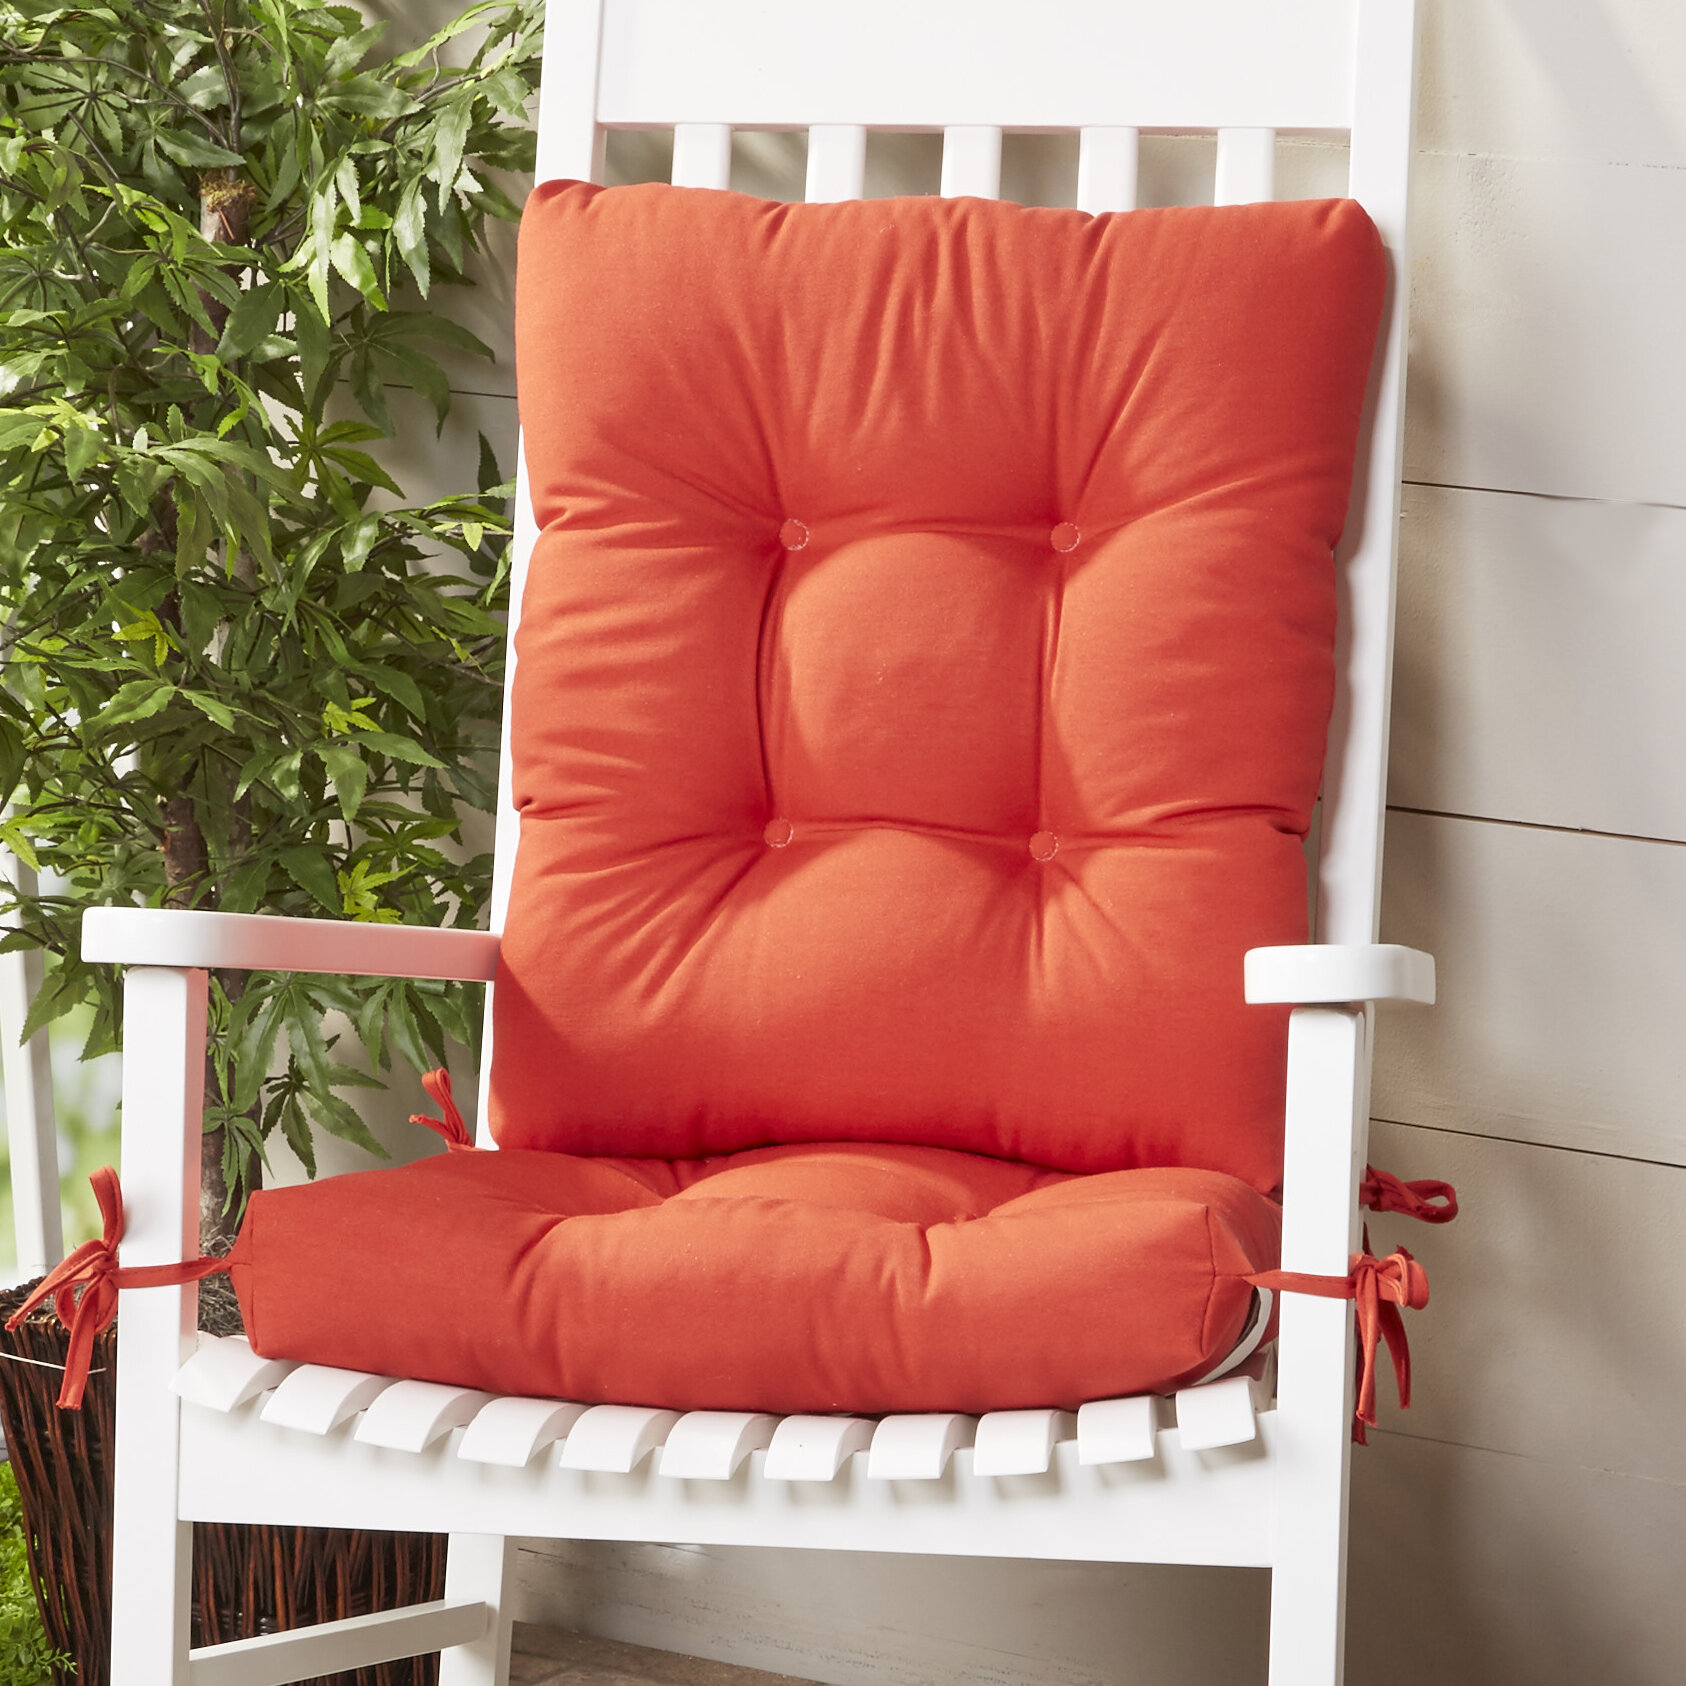 Wayfair Basics™ Wayfair Basics Indoor/Outdoor 2 Piece Rocking Chair Cushion  Set U0026 Reviews | Wayfair